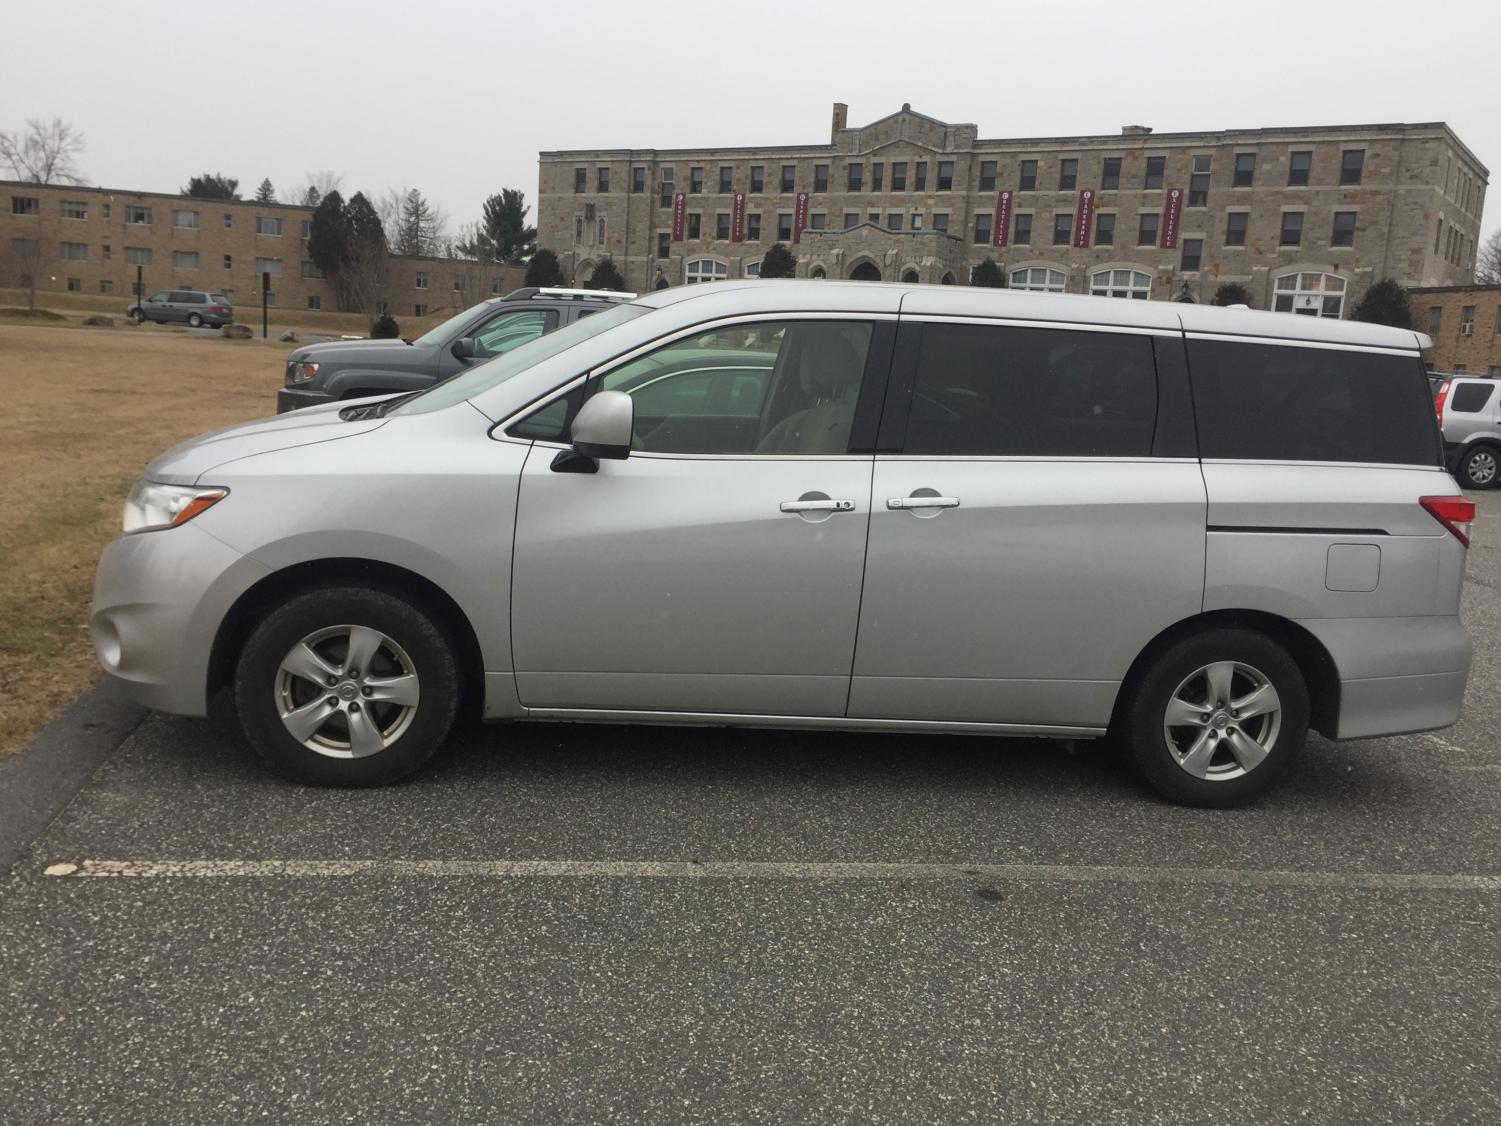 A MacDuffie minivan sitting outside the school's main building in the parking lot. This is the same model of the minivan that caught on fire; however there are some changes such as the color. Photo by Marie Hua